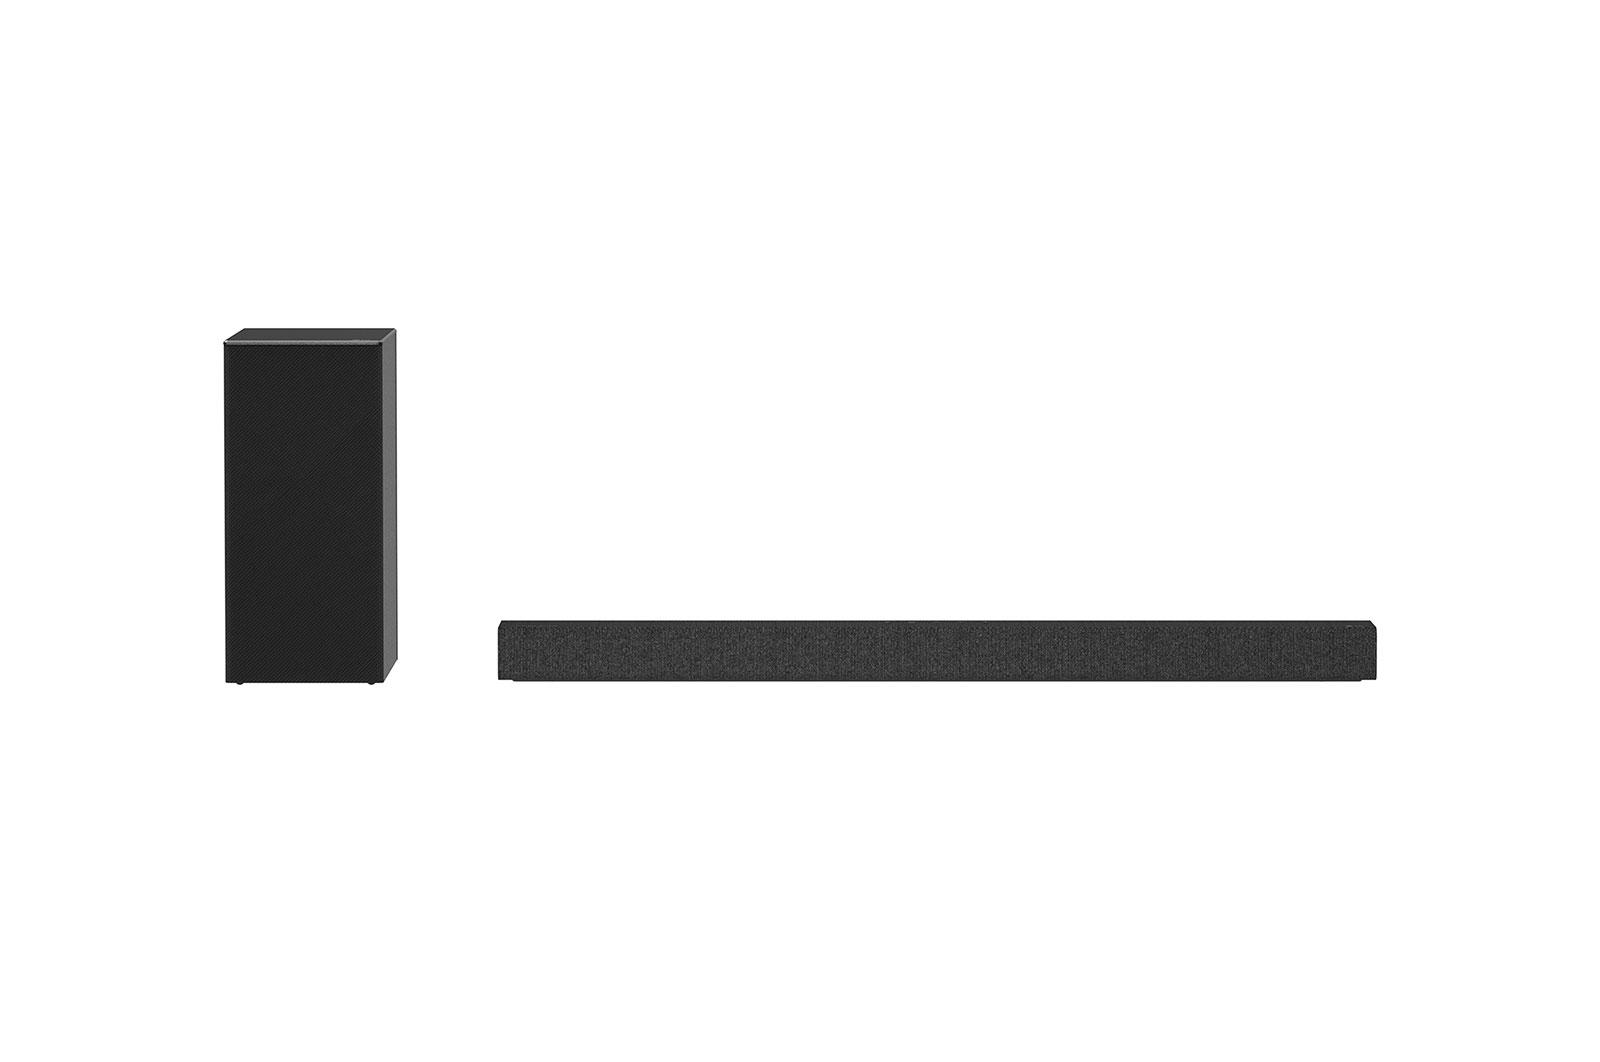 LG AppliancesLg Sp7y 5.1 Channel High Res Audio Sound Bar With Dts Virtual:x